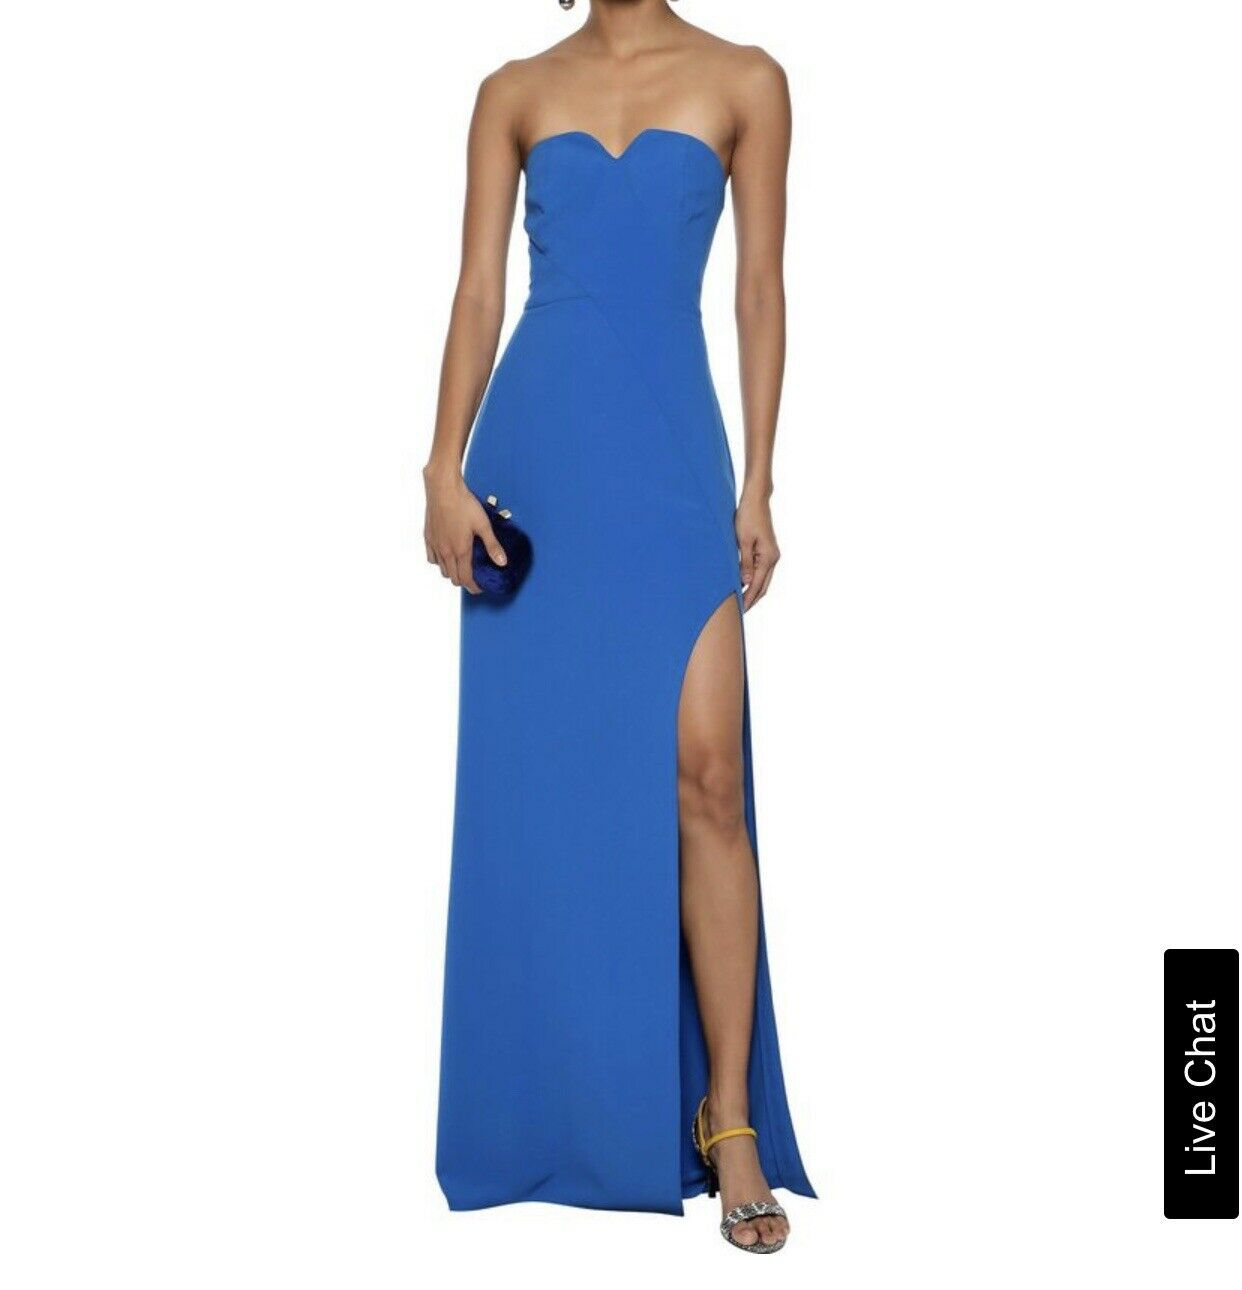 Halston Heritage Womens bluee Strapless Evening Dress Gown Gown Gown Size 6 0b9f45